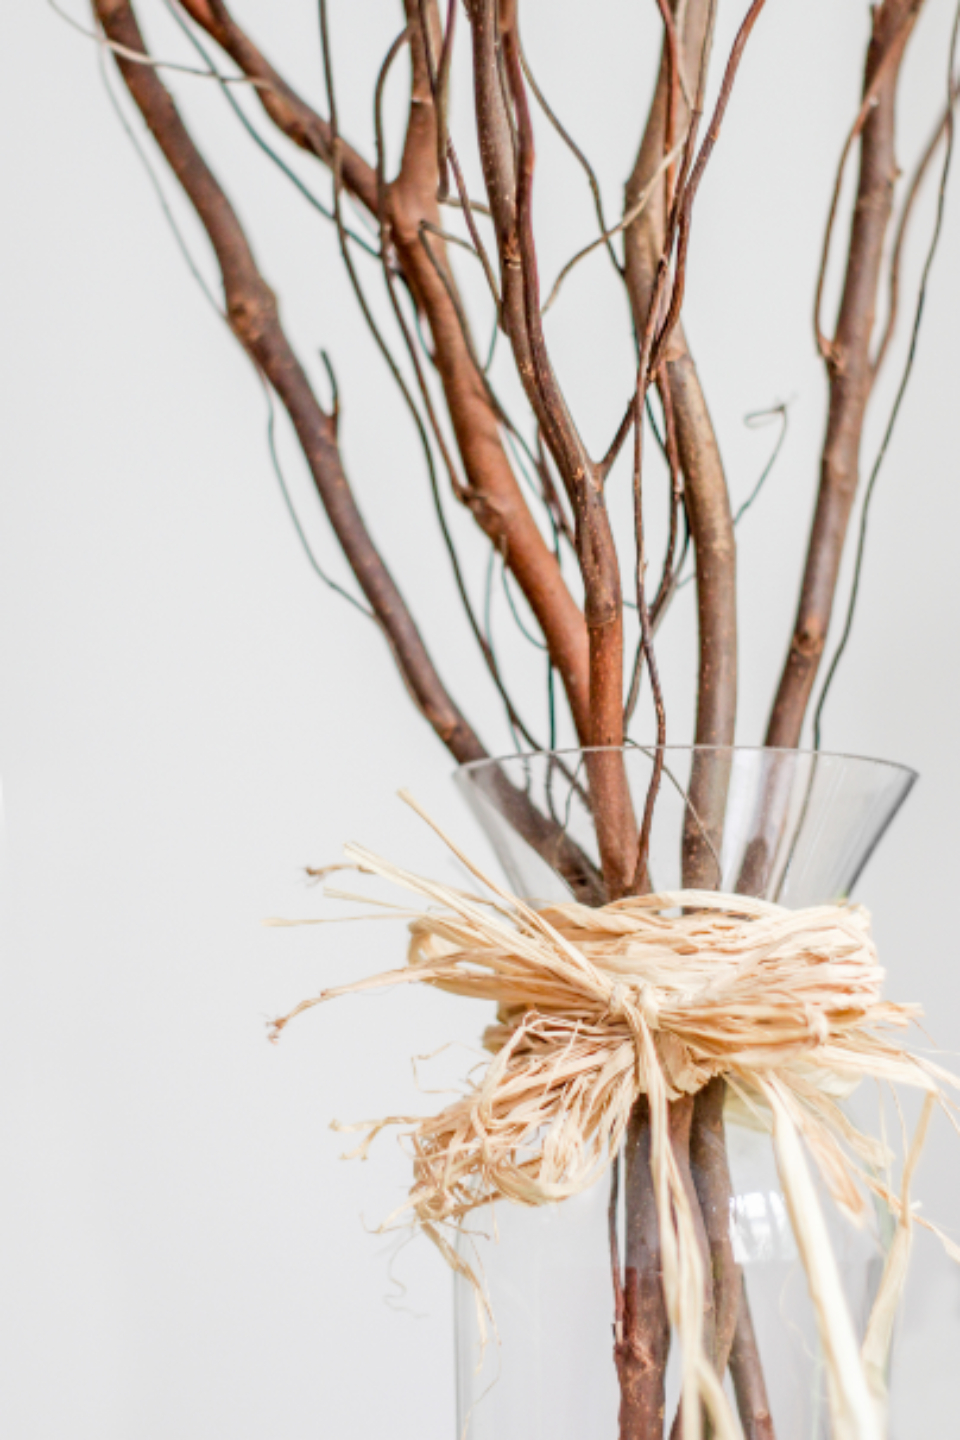 decorative vase branches minimal clean close up objects pastel simple decor background bouquet creative design interior home stylish